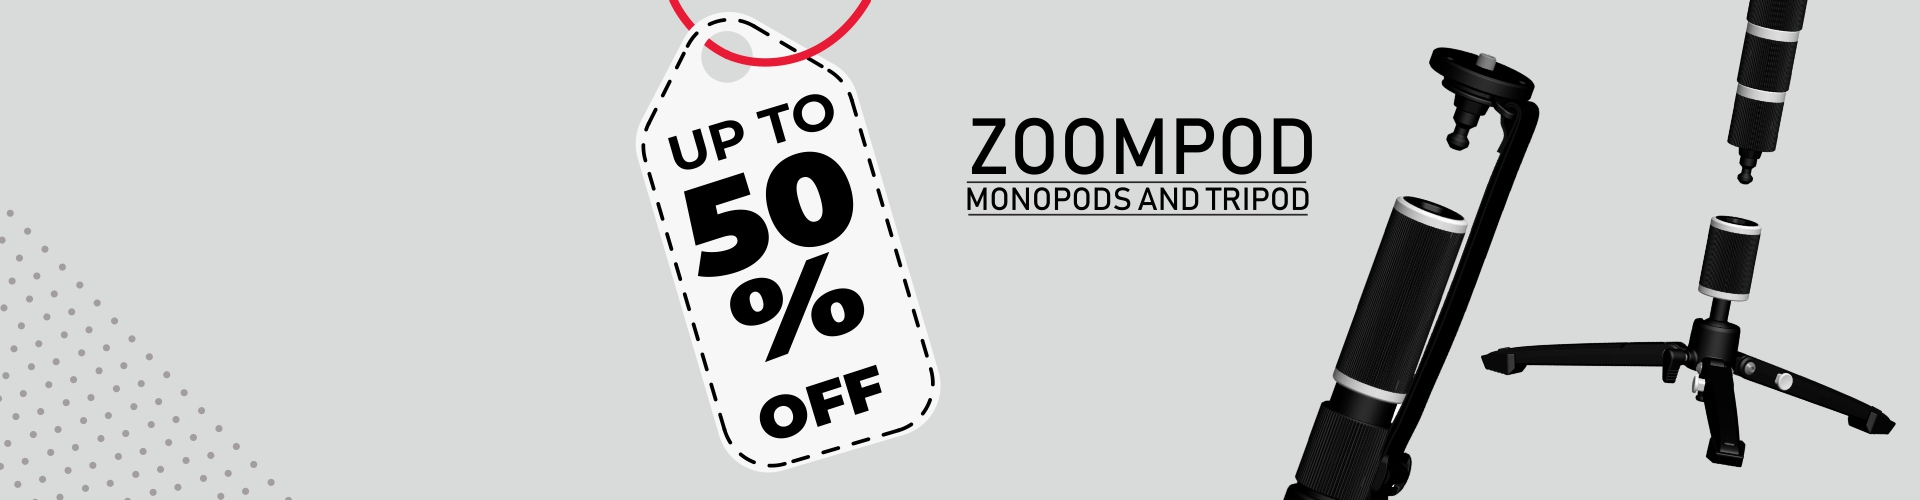 Zoompod upto 50% Off